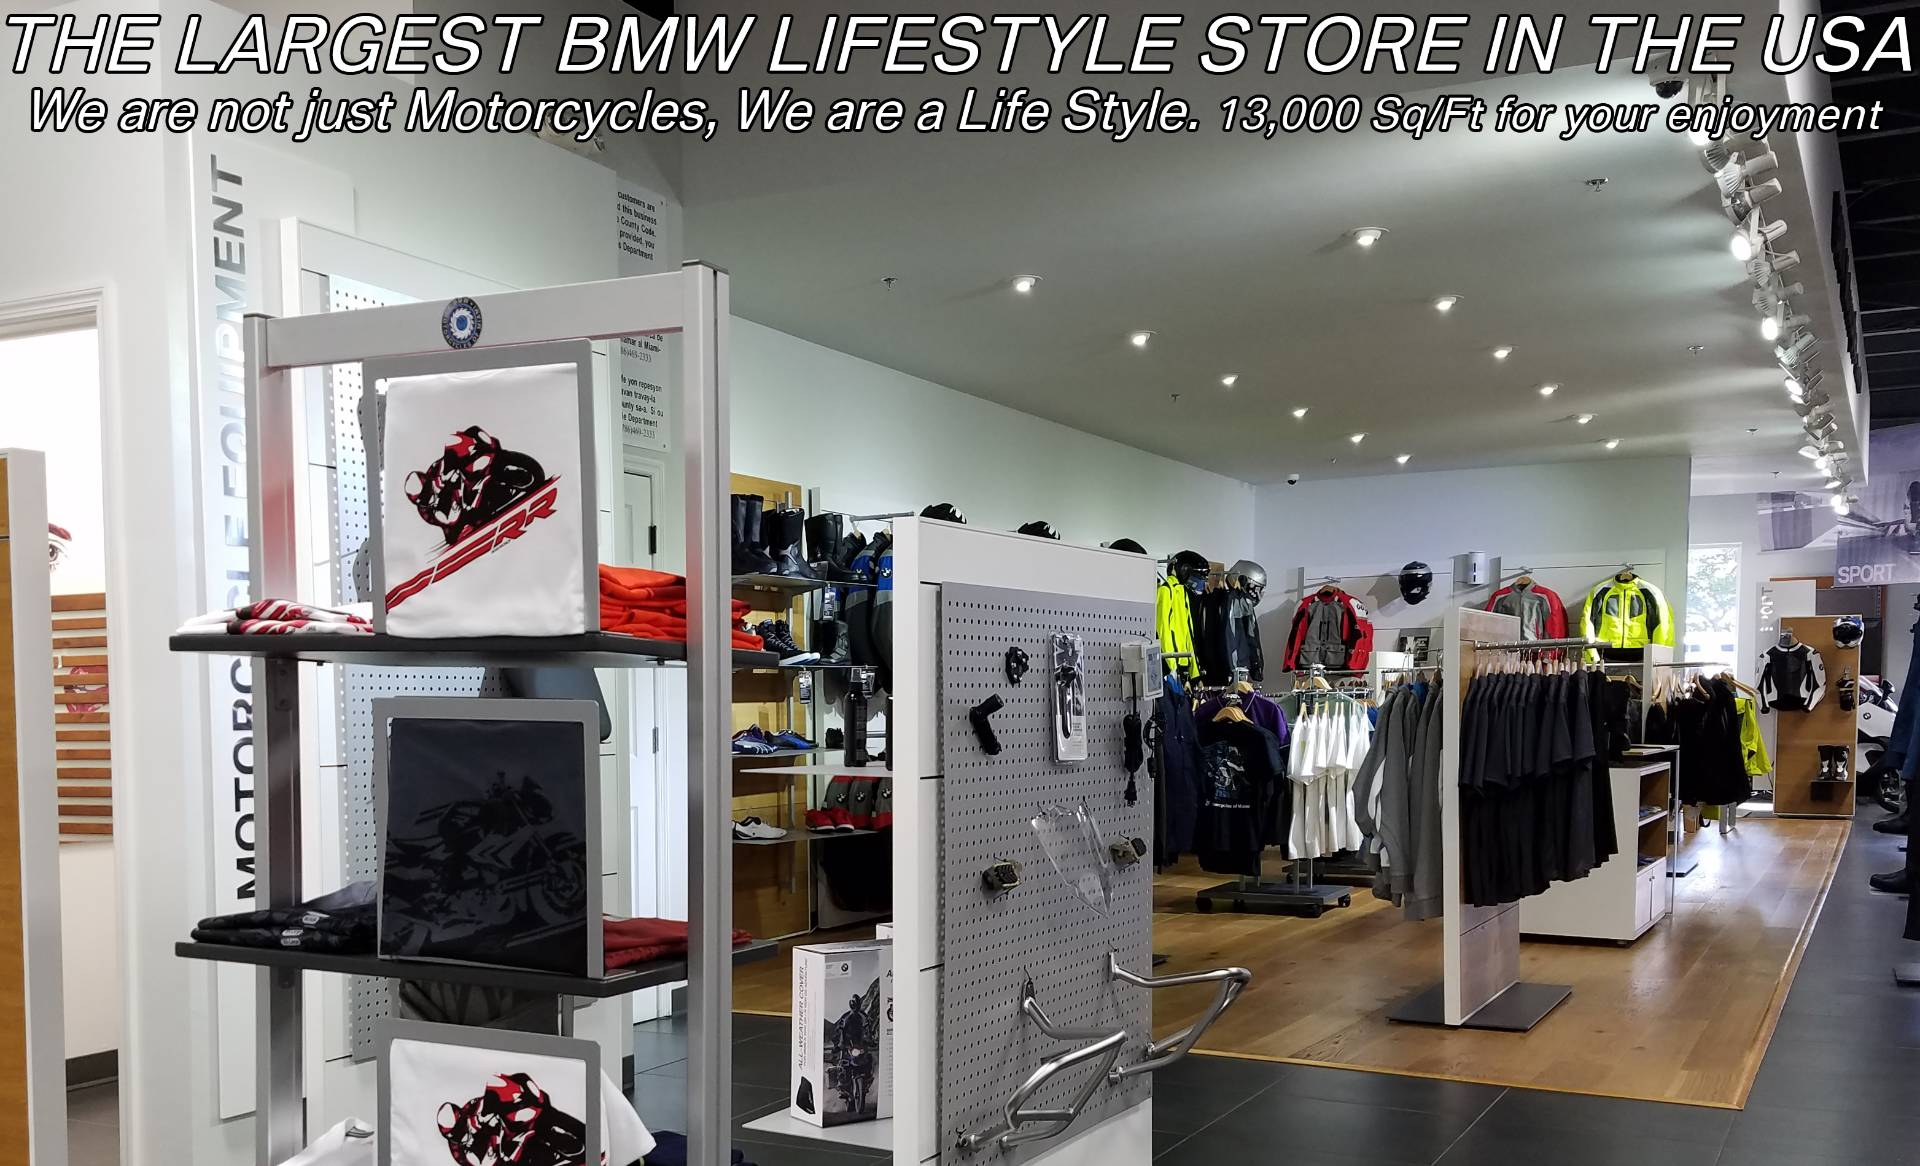 New 2019 BMW G 310 GS for sale, BMW G 310GS for sale, BMW Motorcycle GS, new BMW GS, Spirit of GS, BMW Motorcycles of Miami, Motorcycles of Miami, Motorcycles Miami, New Motorcycles, Used Motorcycles, pre-owned. #BMWMotorcyclesOfMiami #MotorcyclesOfMiami. - Photo 40